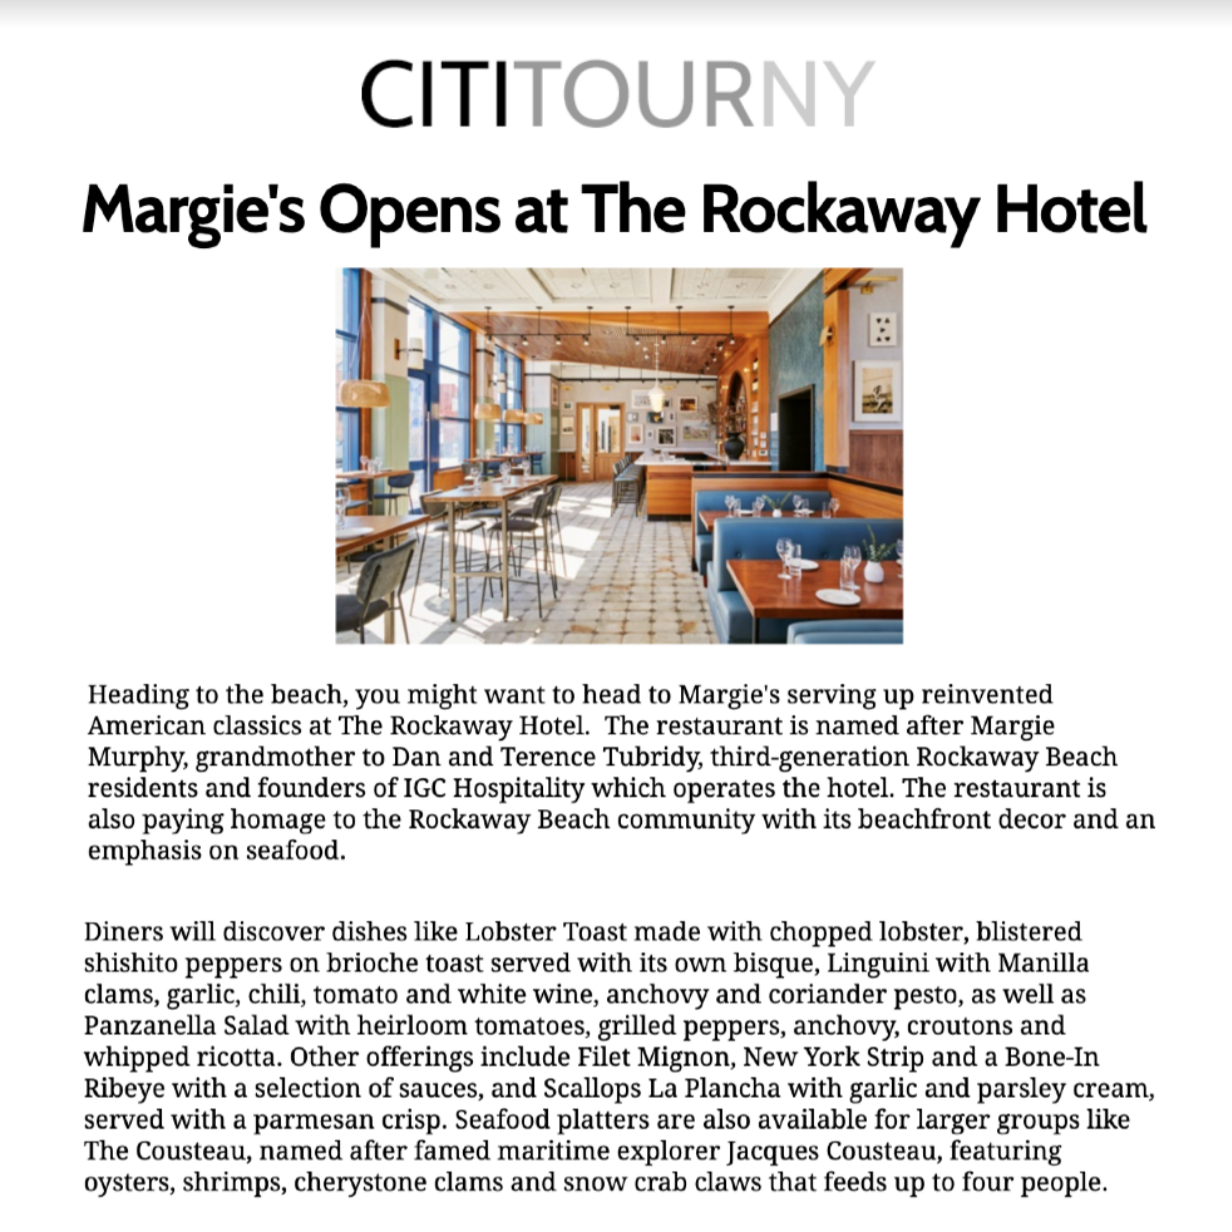 Article about The Rockaway Hotel in Cititourny by Cititour.com